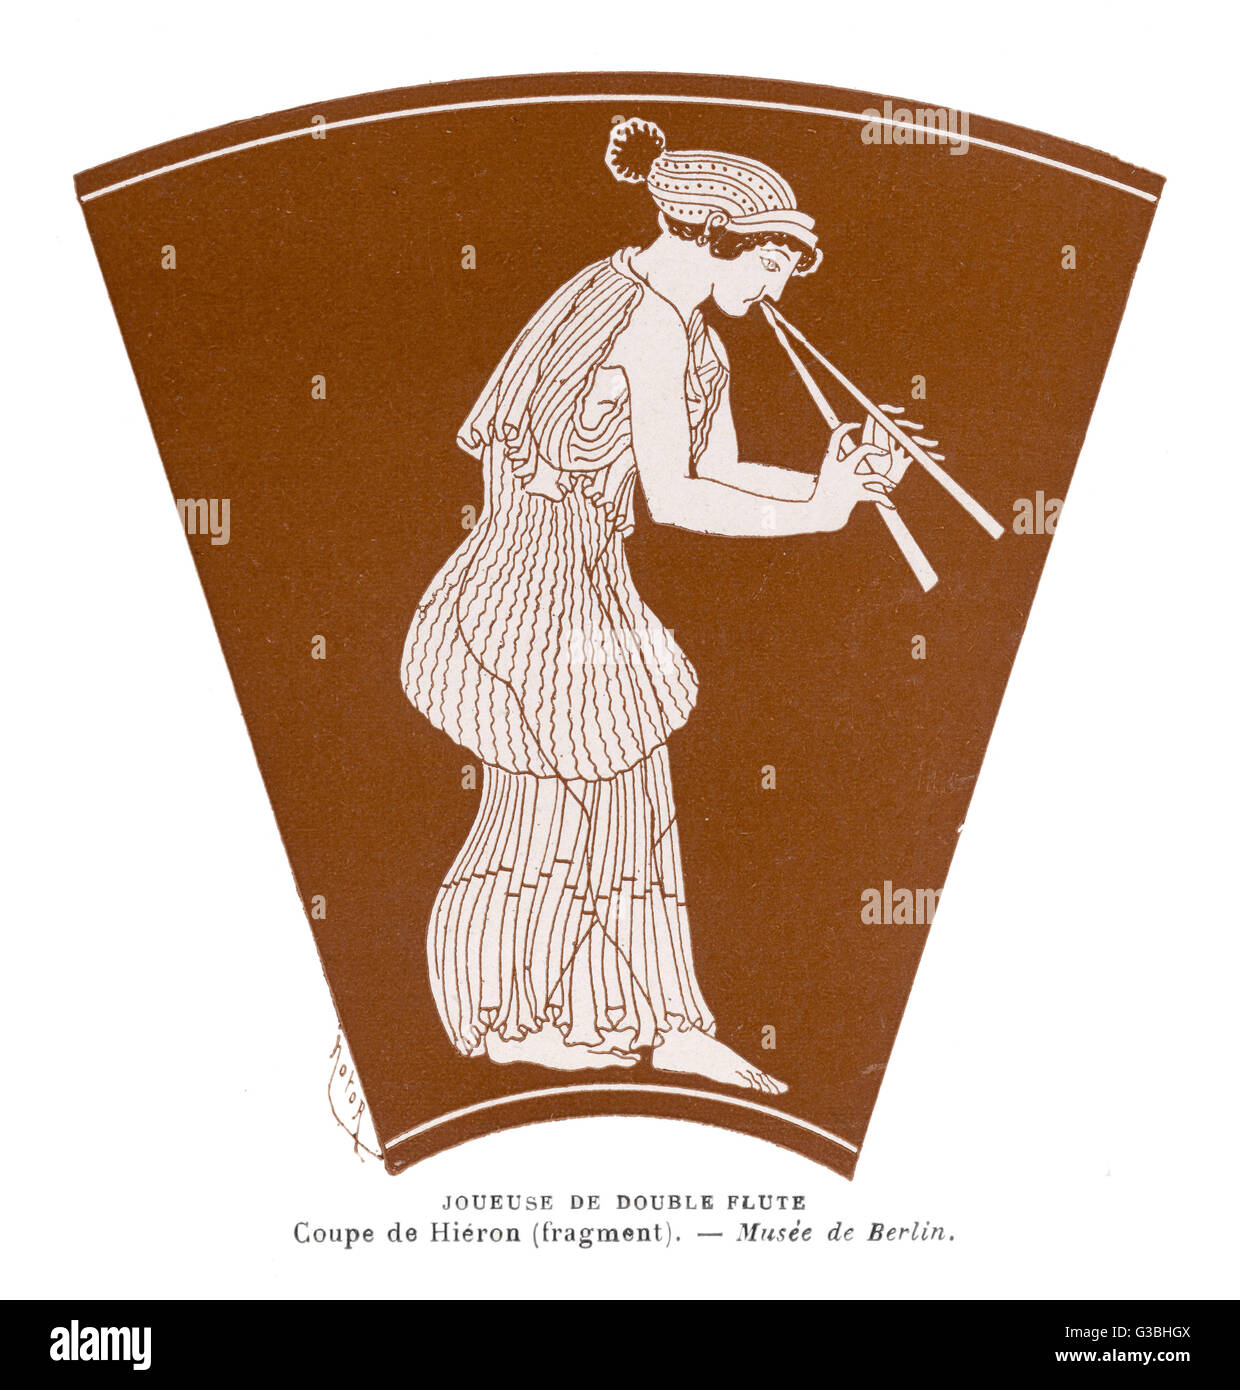 ANCIENT GREECE: a musician in a finely pleated  chiton which appears to be of  a very sheer, translucent cloth  - Stock Image